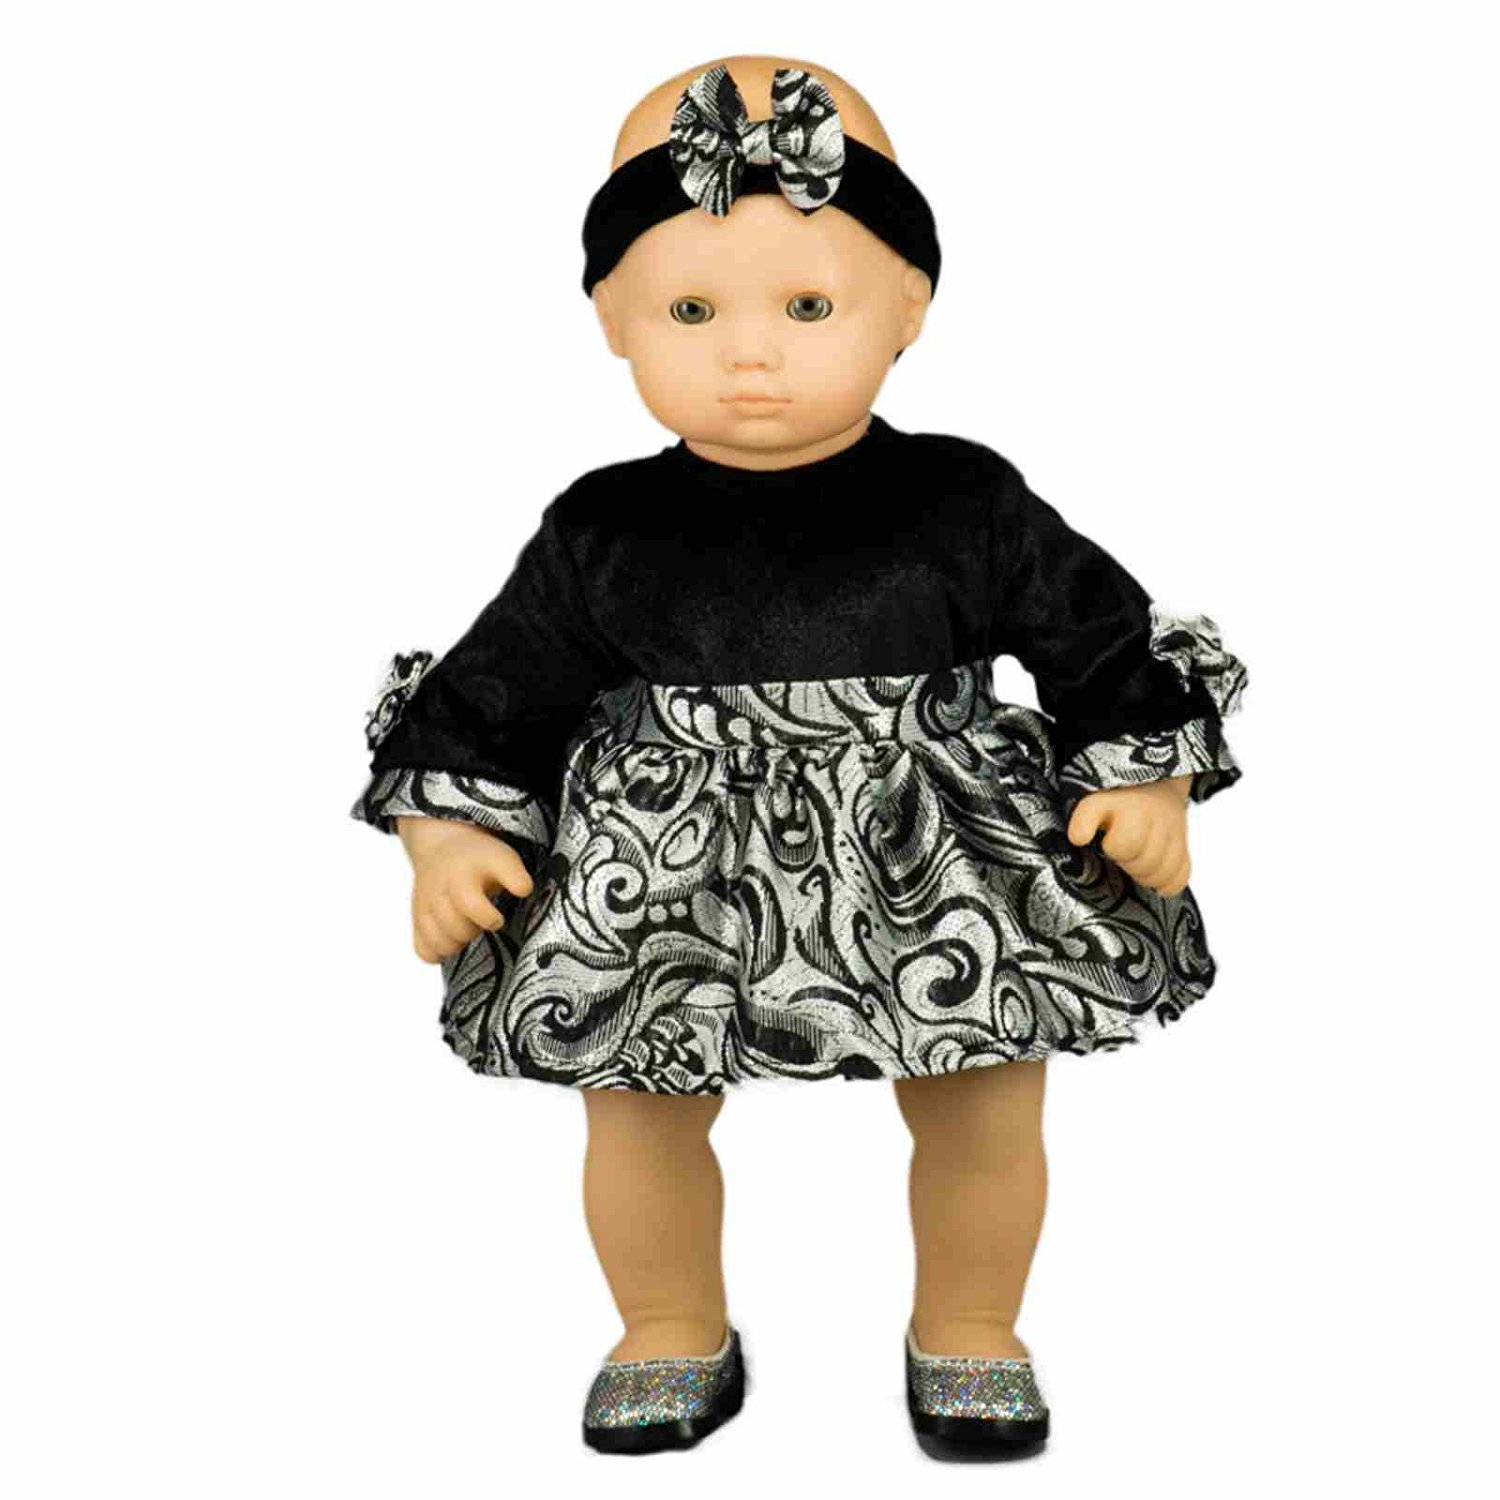 Cheap Baby Doll Twins find Baby Doll Twins deals on line at Alibaba